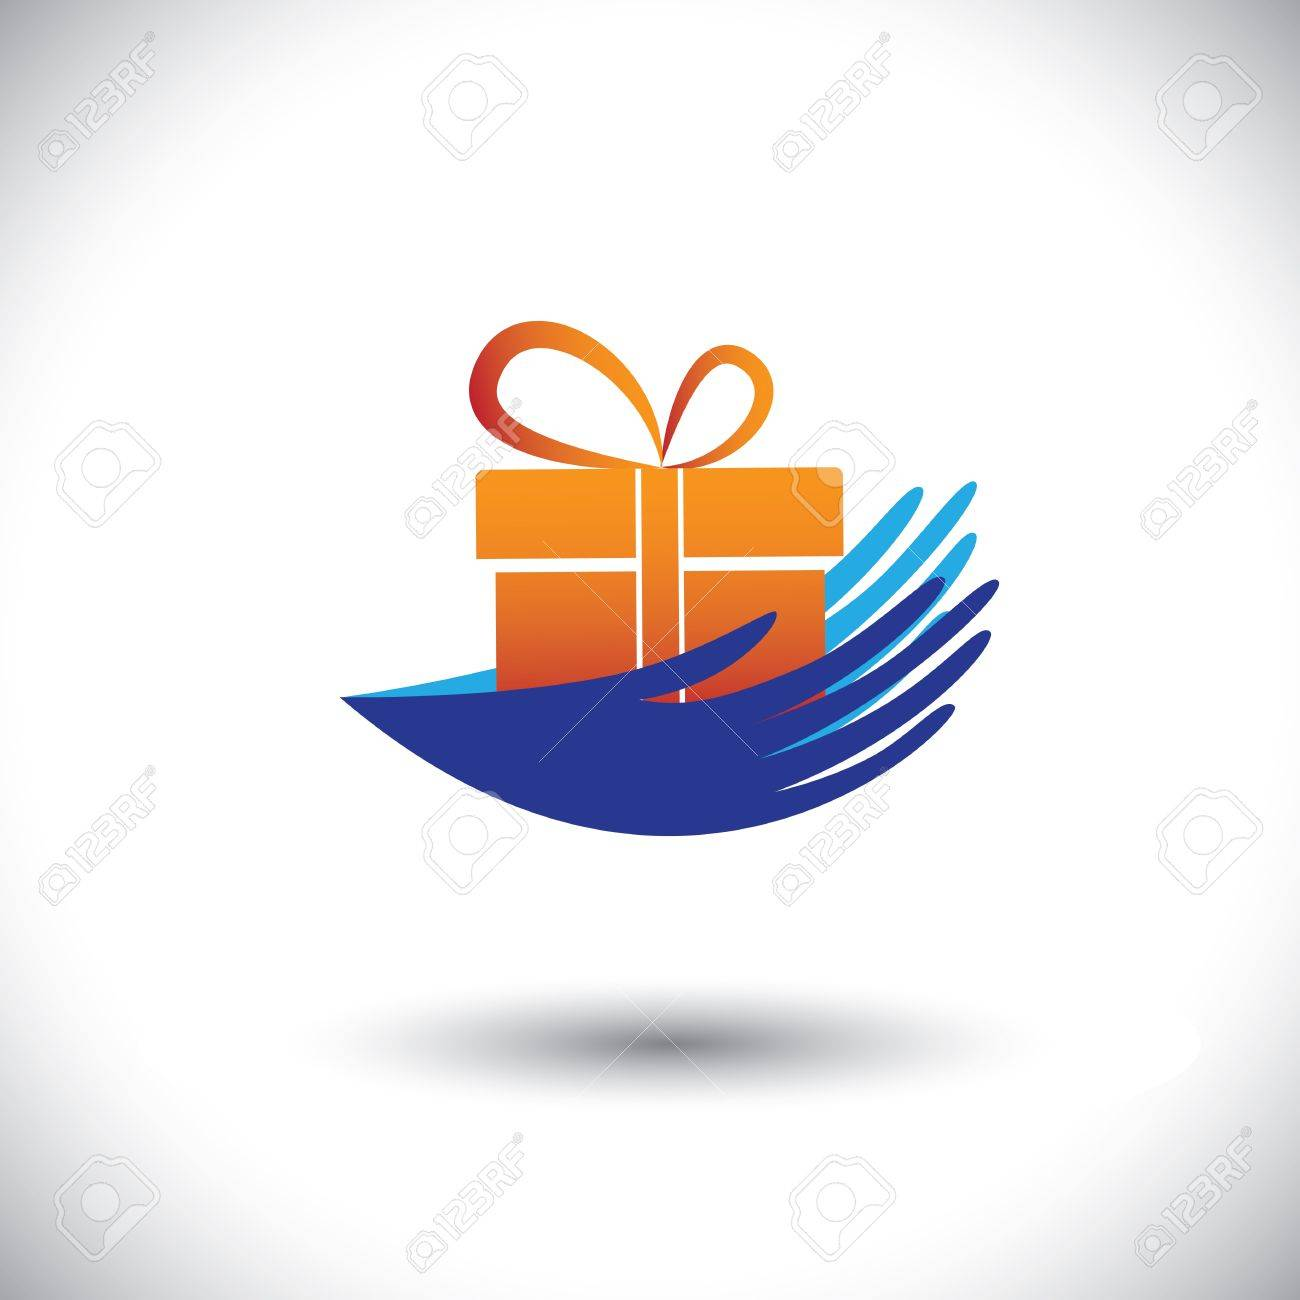 Concept  graphic- woman's hands with gift icon(symbol). The illustration can represent concepts like getting bonus, presents, employment offers, surprise benefits & also giving to charity, etc Stock Vector - 20353055